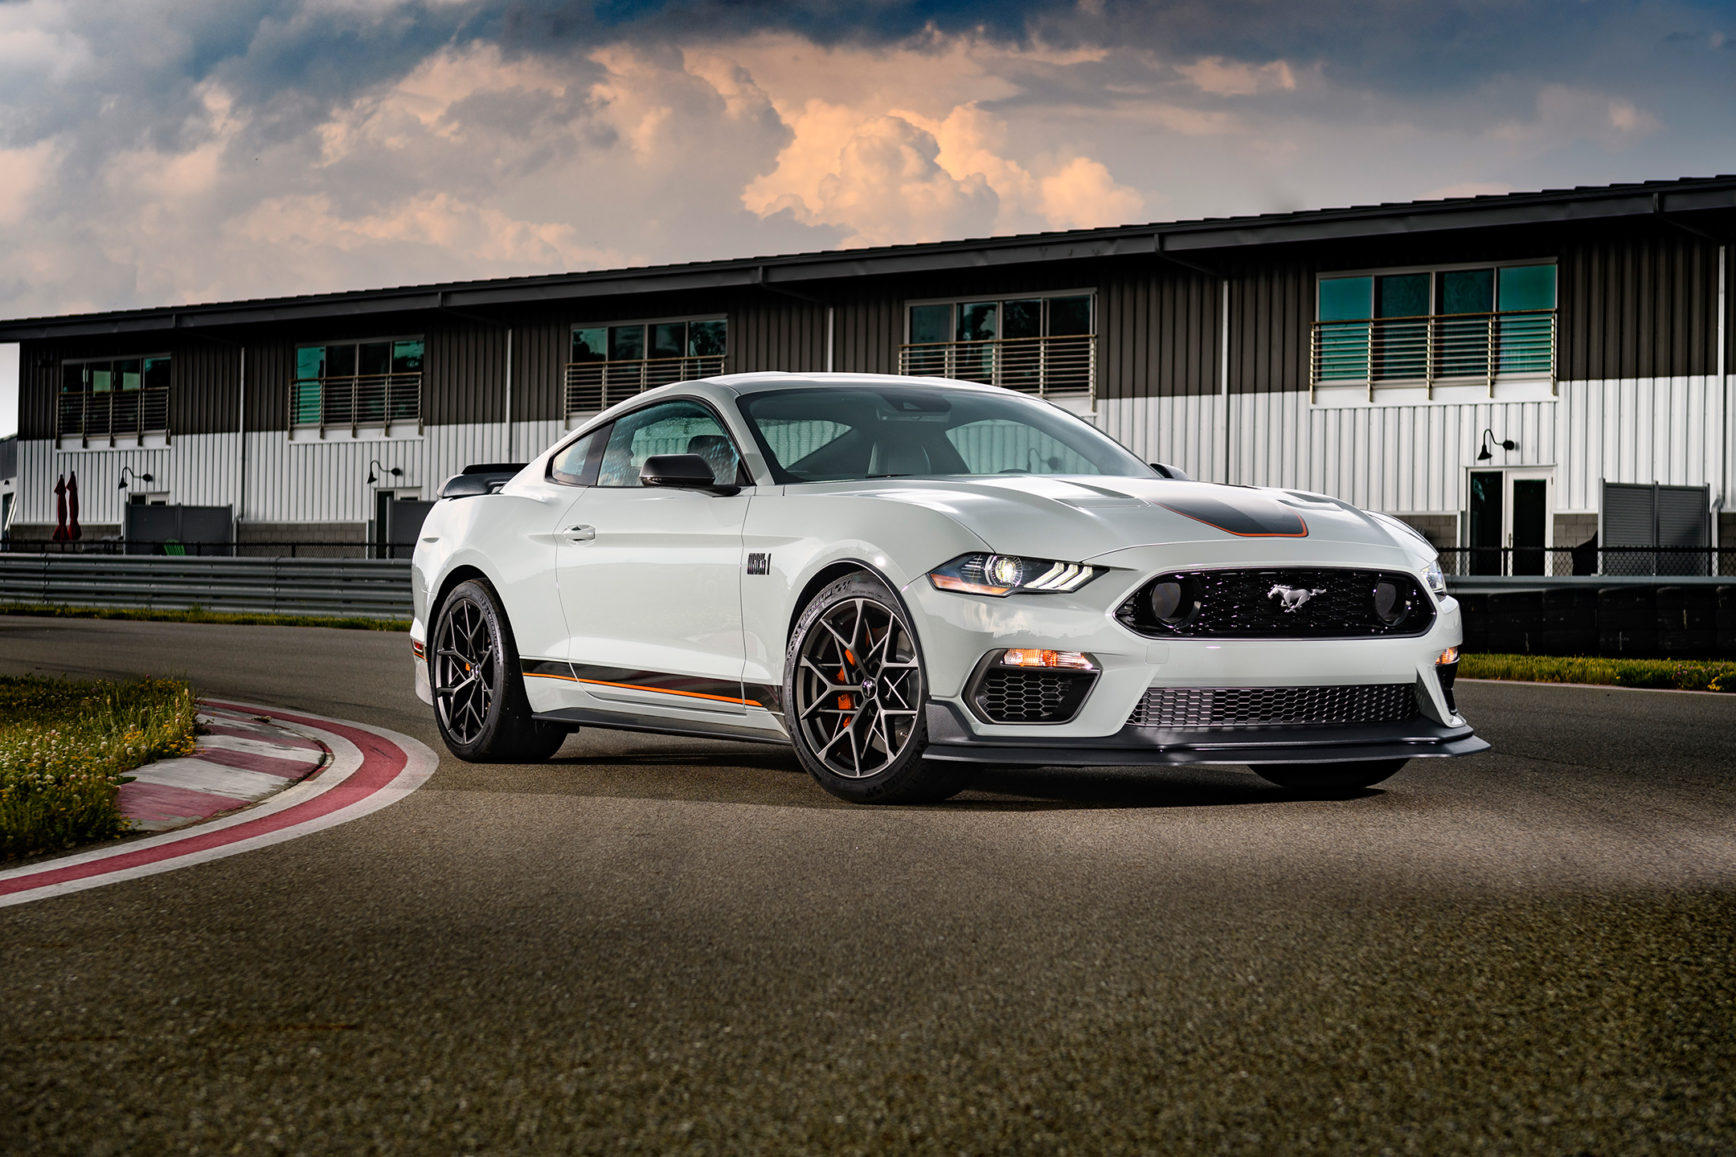 Ford Mustang Mach 1 - 2020 - front side-face / profil avant